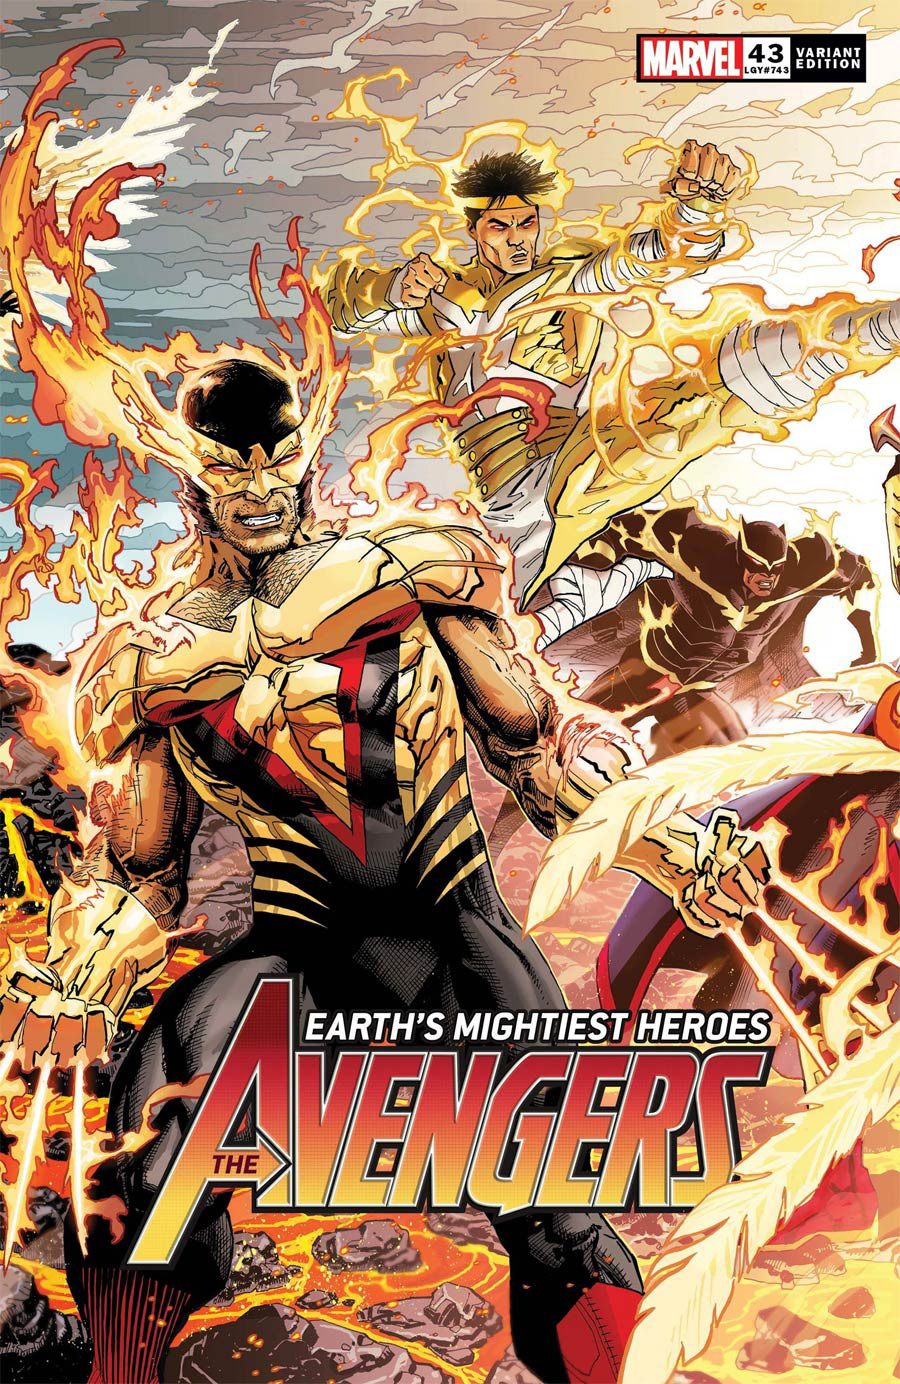 Avengers Vol 7 #43 Cover D Variant Dustin Weaver Connecting Cover